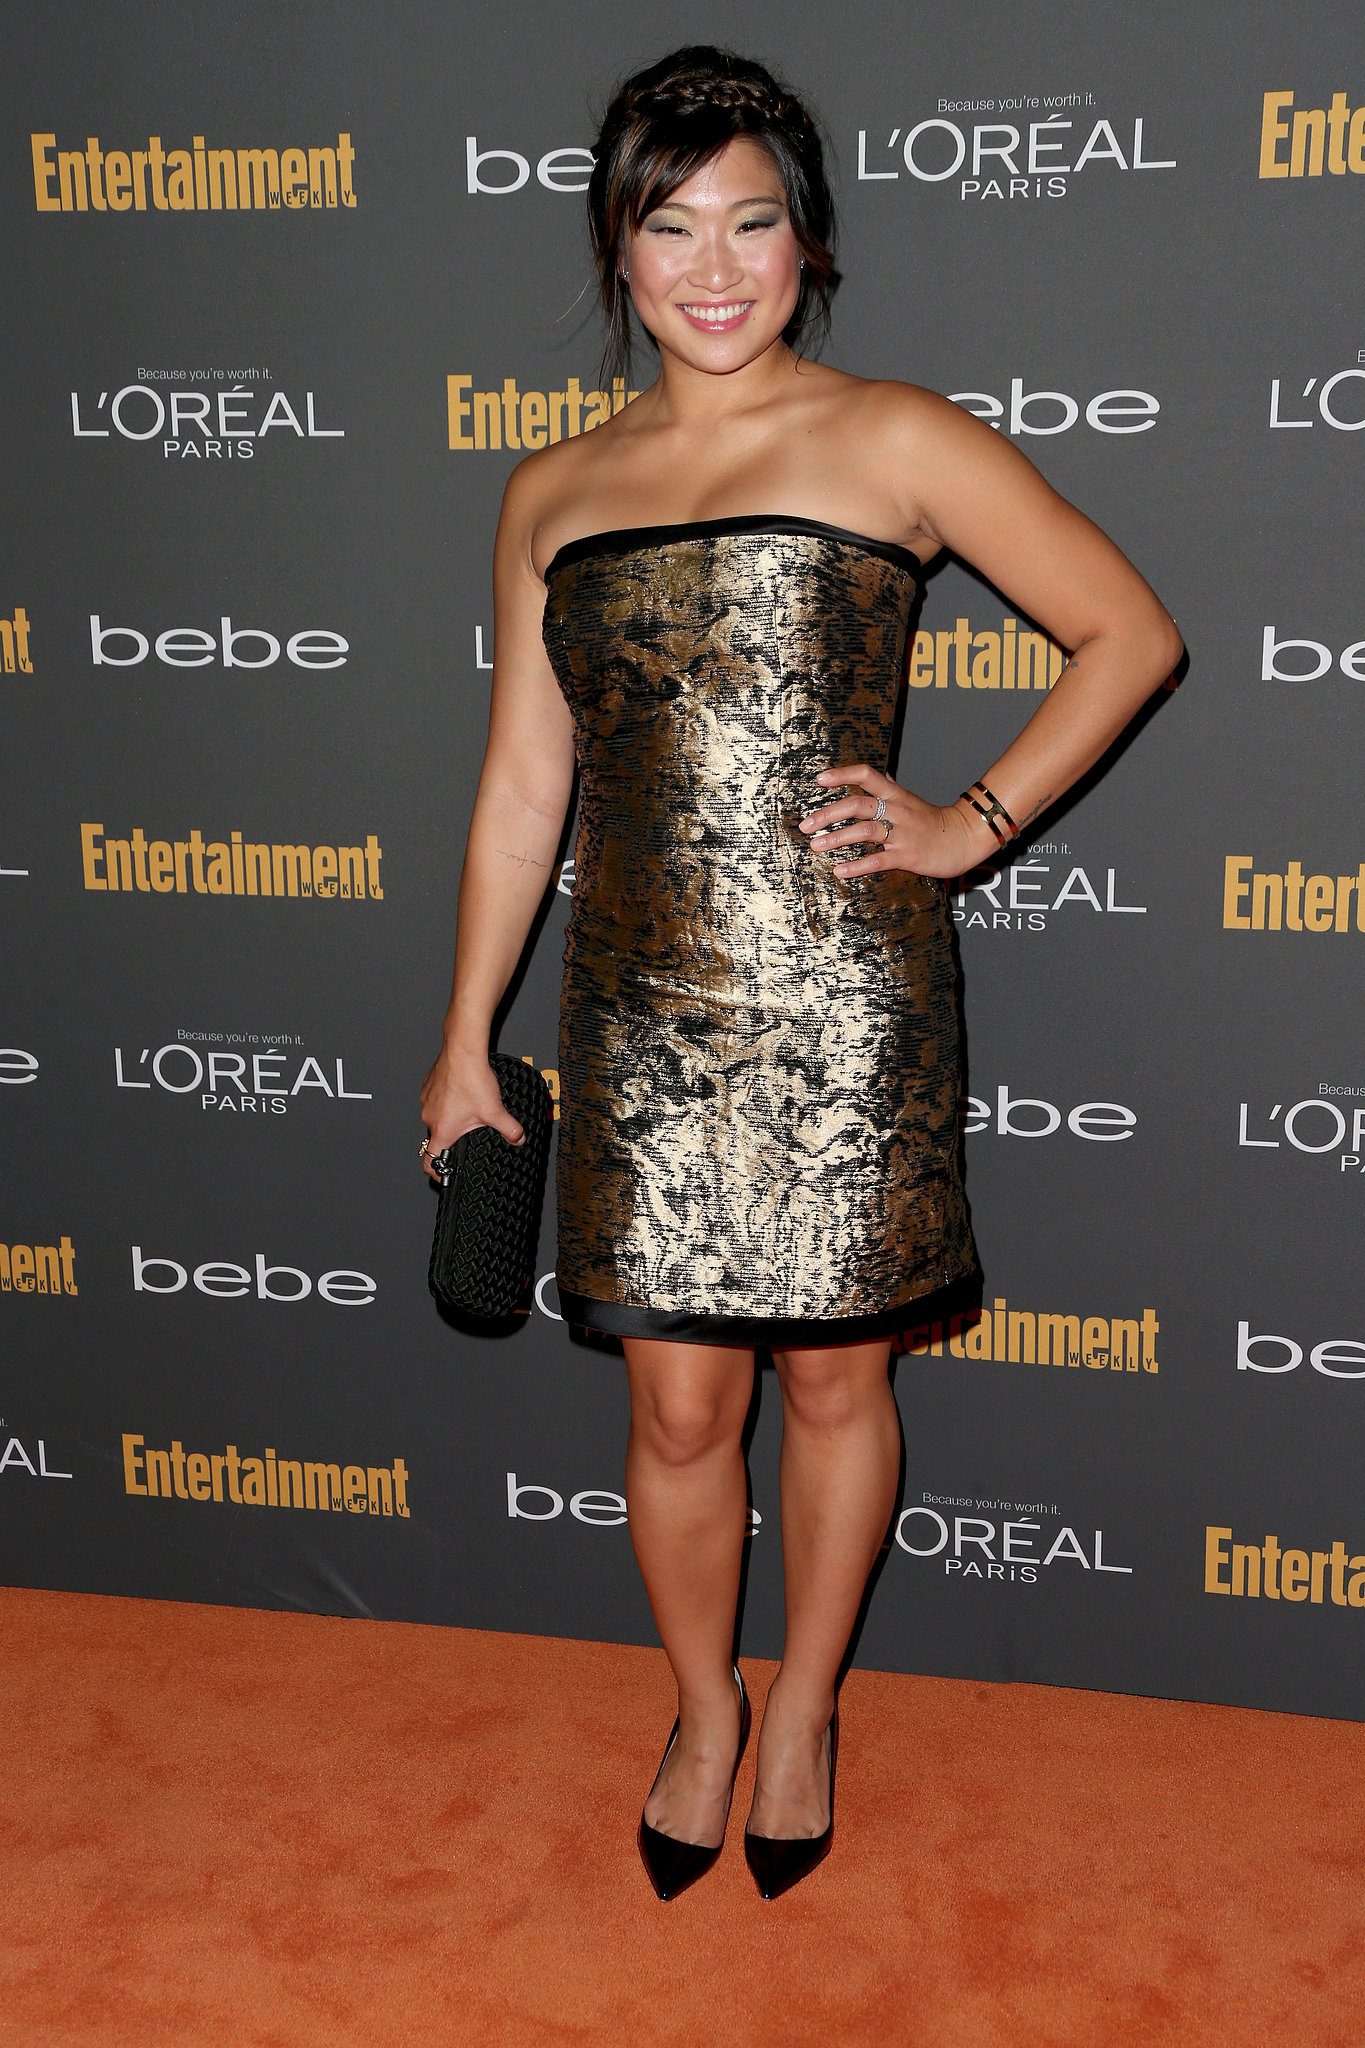 Jenna Ushkowitz shined in a gold metallic strapless minidress and black add-ons at the Entertainment Weekly pre-Emmys